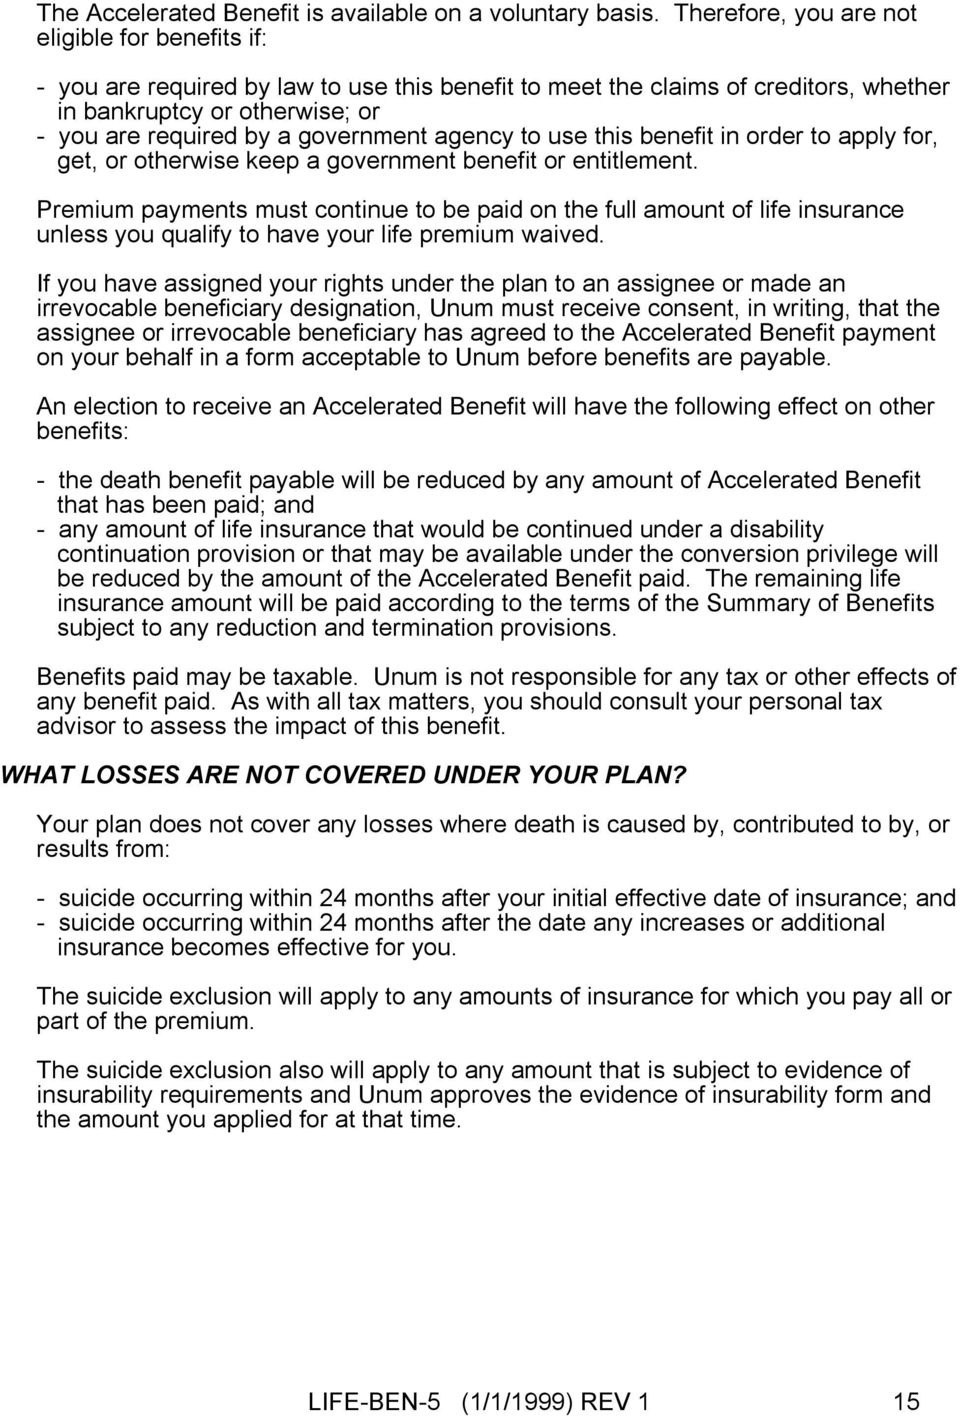 government agency to use this benefit in order to apply for, get, or otherwise keep a government benefit or entitlement.